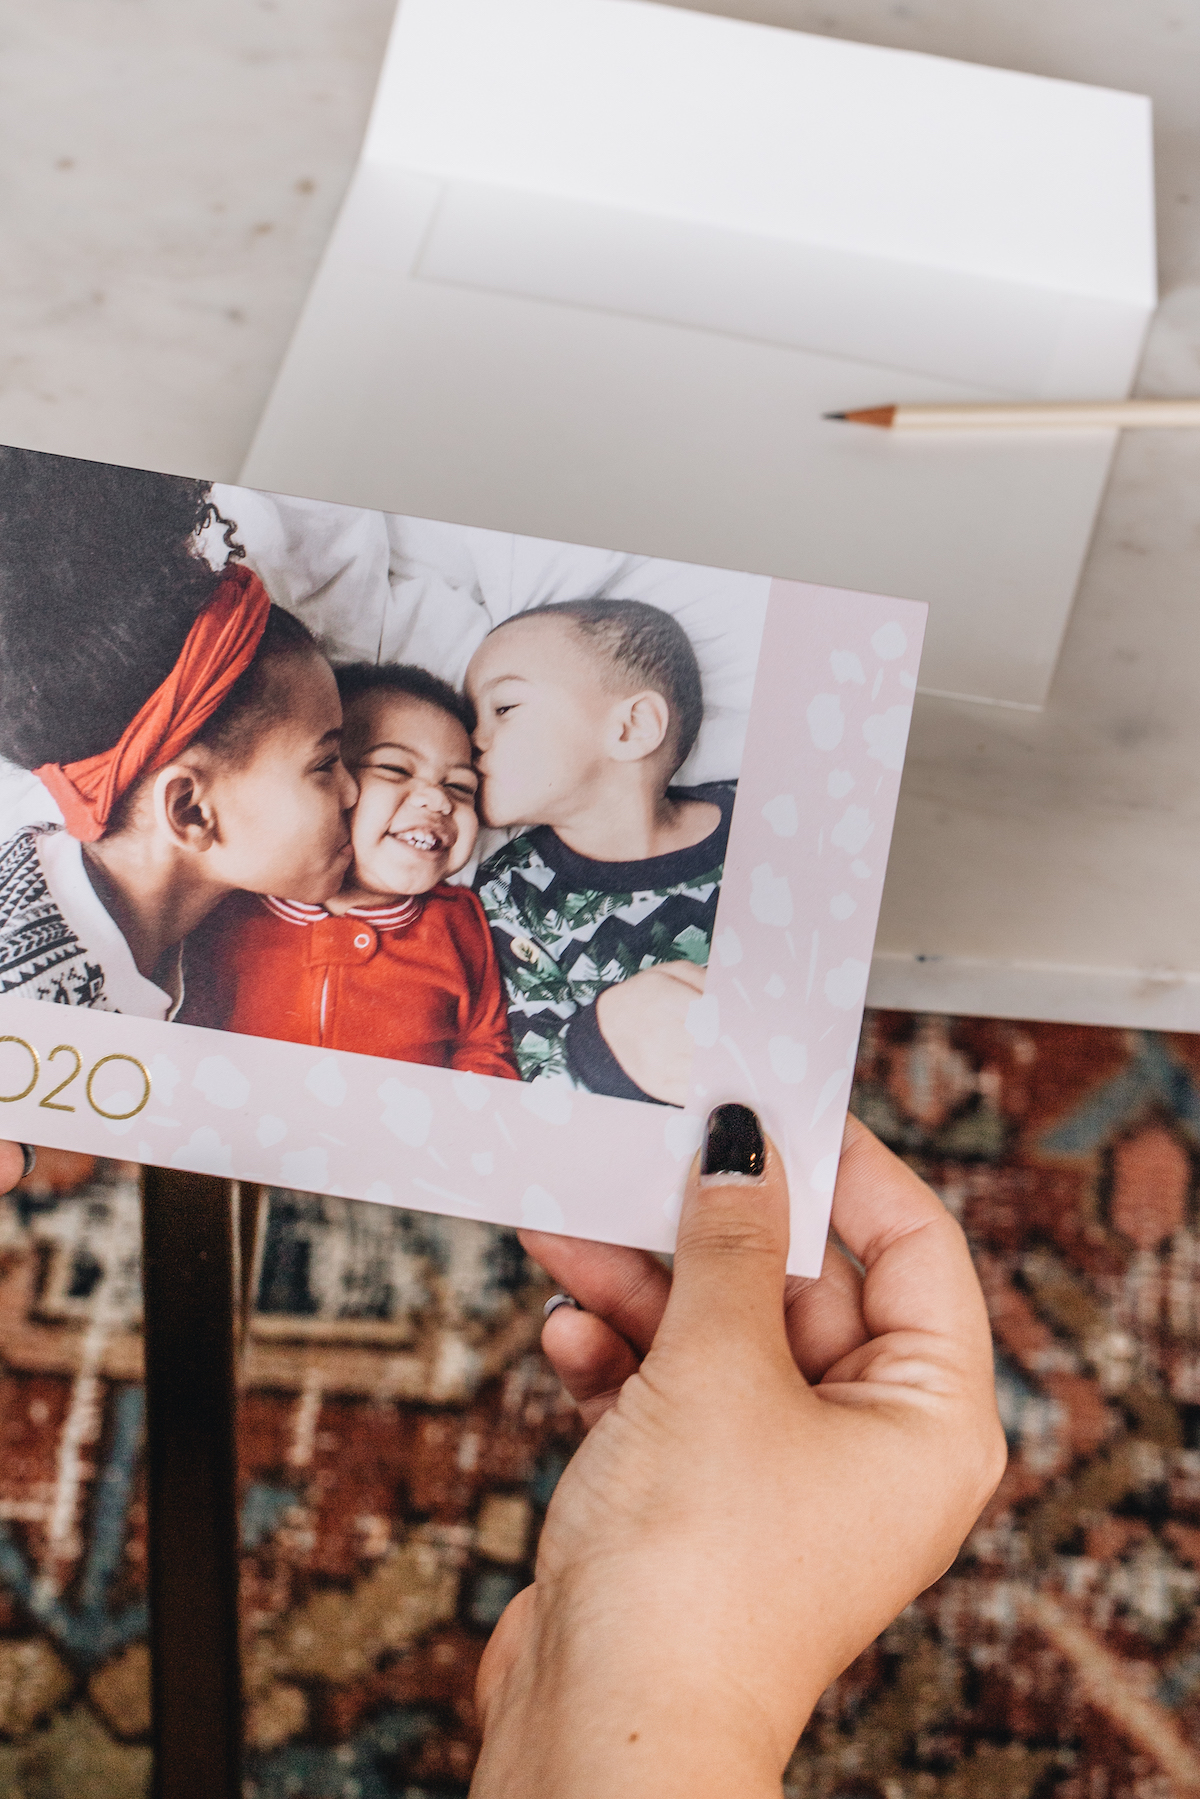 Hands holding up holiday card with trio of children in card image